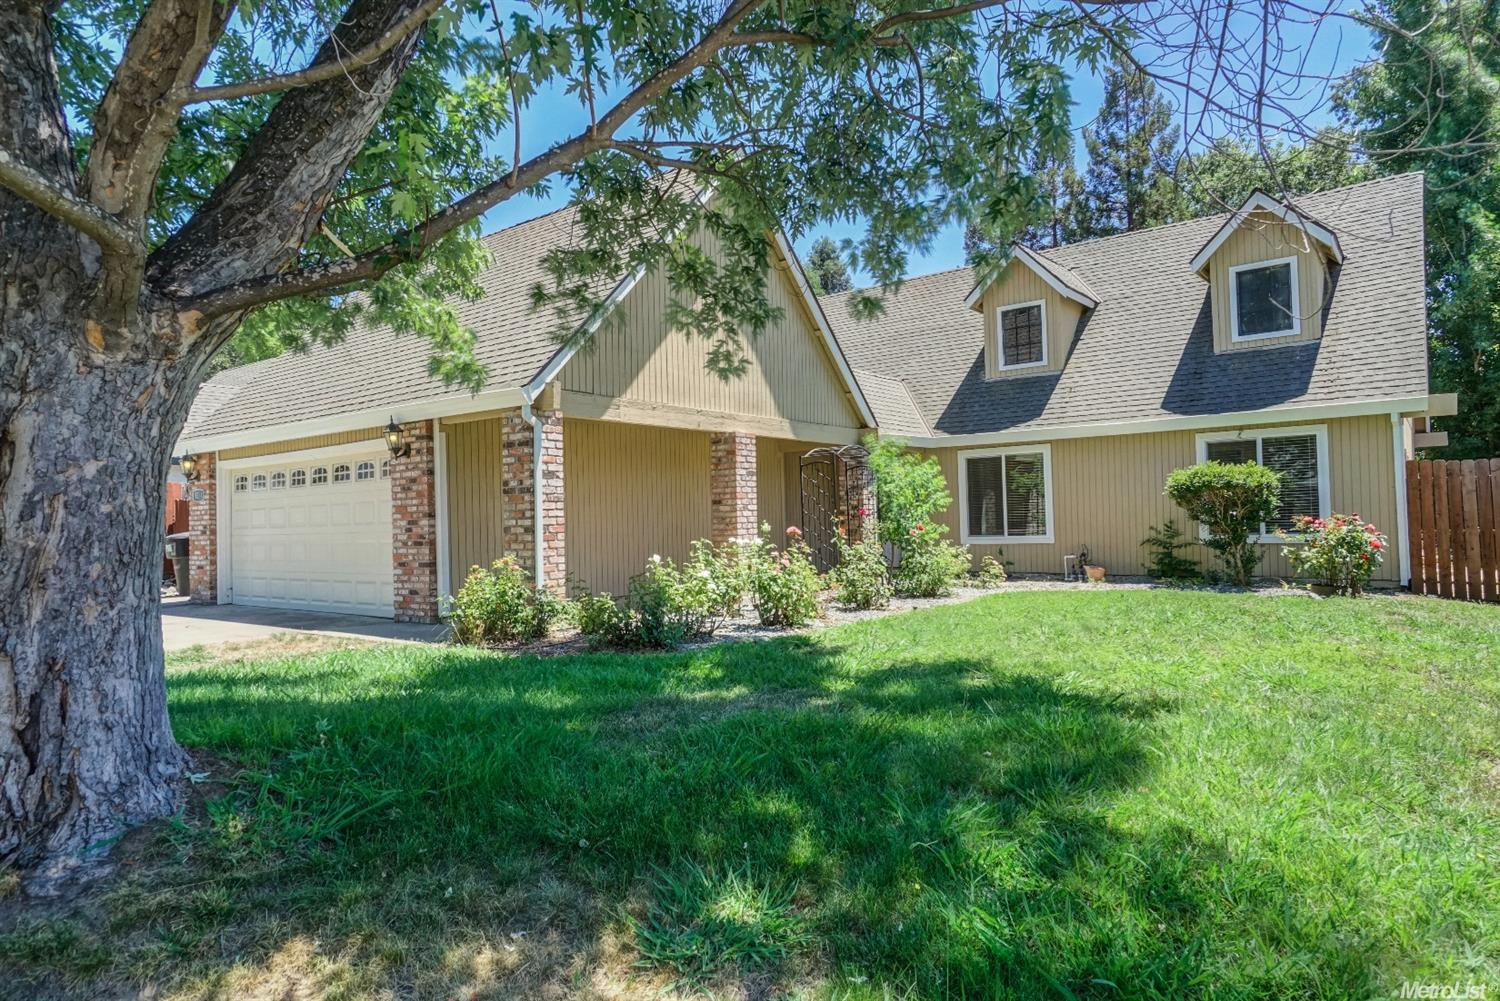 9214 Rock Canyon Way, Orangevale, CA 95662